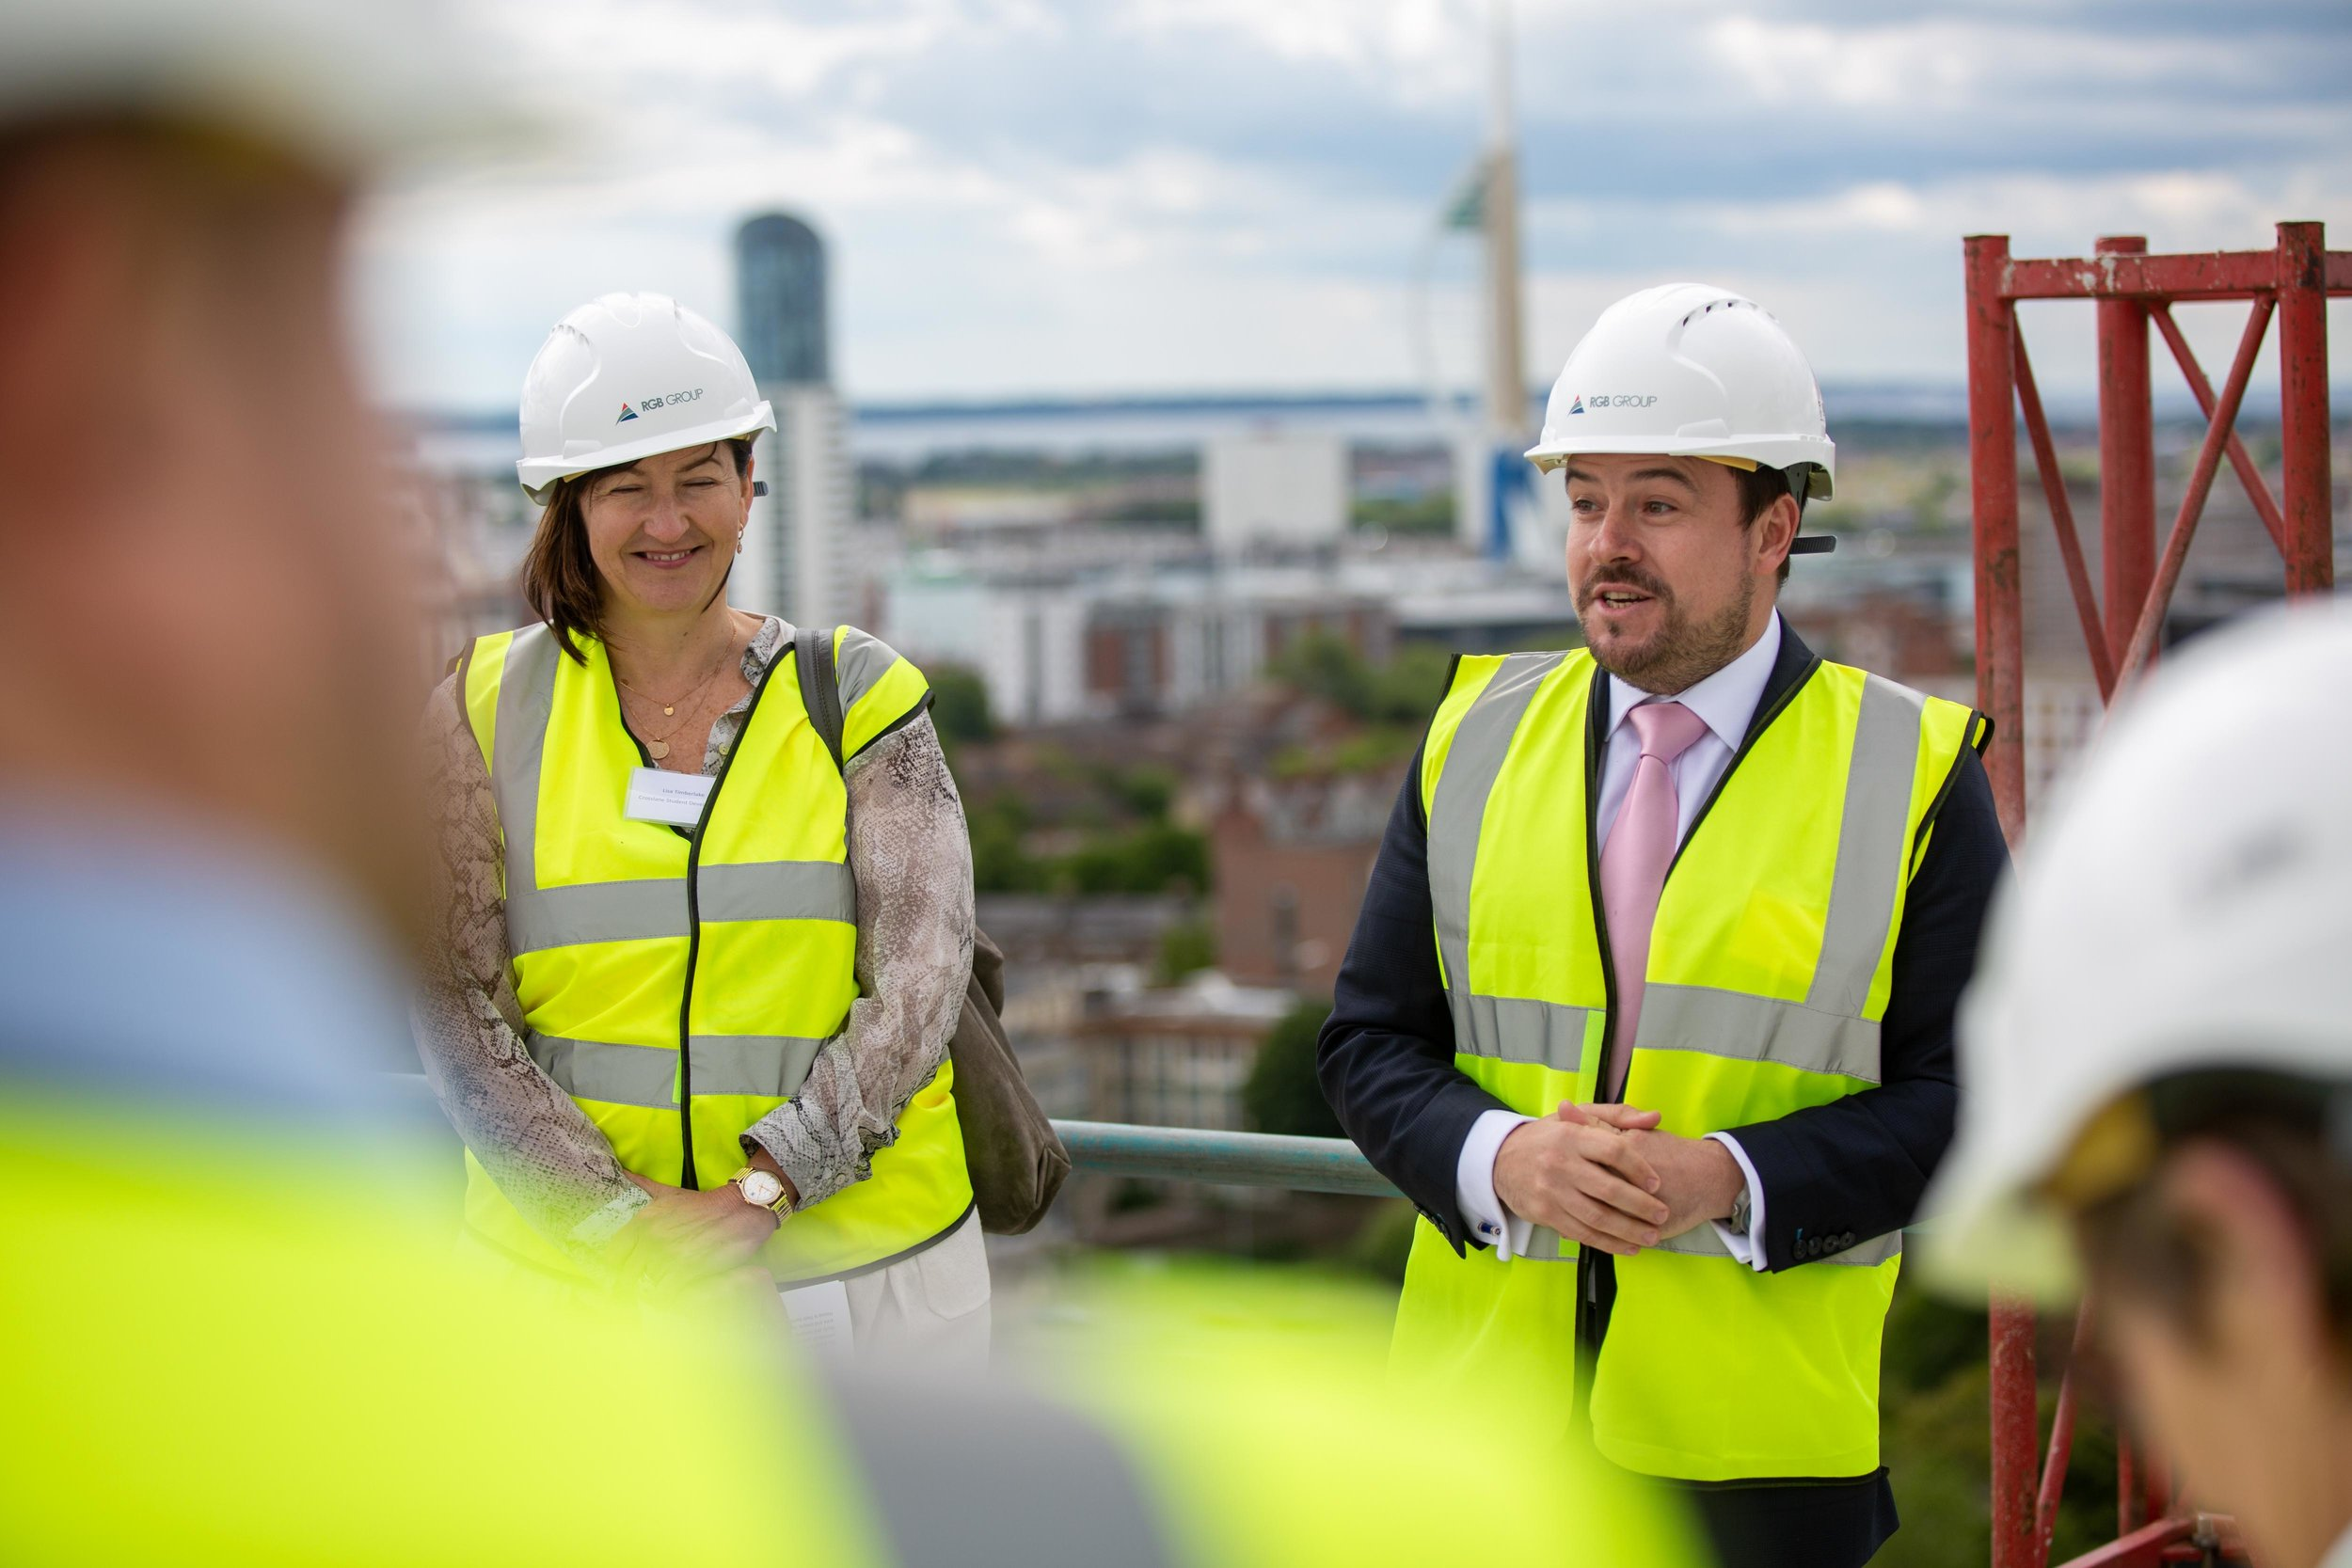 Lisa Timberlake, Senior Development Manager, Crosslane Student Developments and Neil Russell, Managing Director, RGB Group announcing the topping out atop Stanhope House